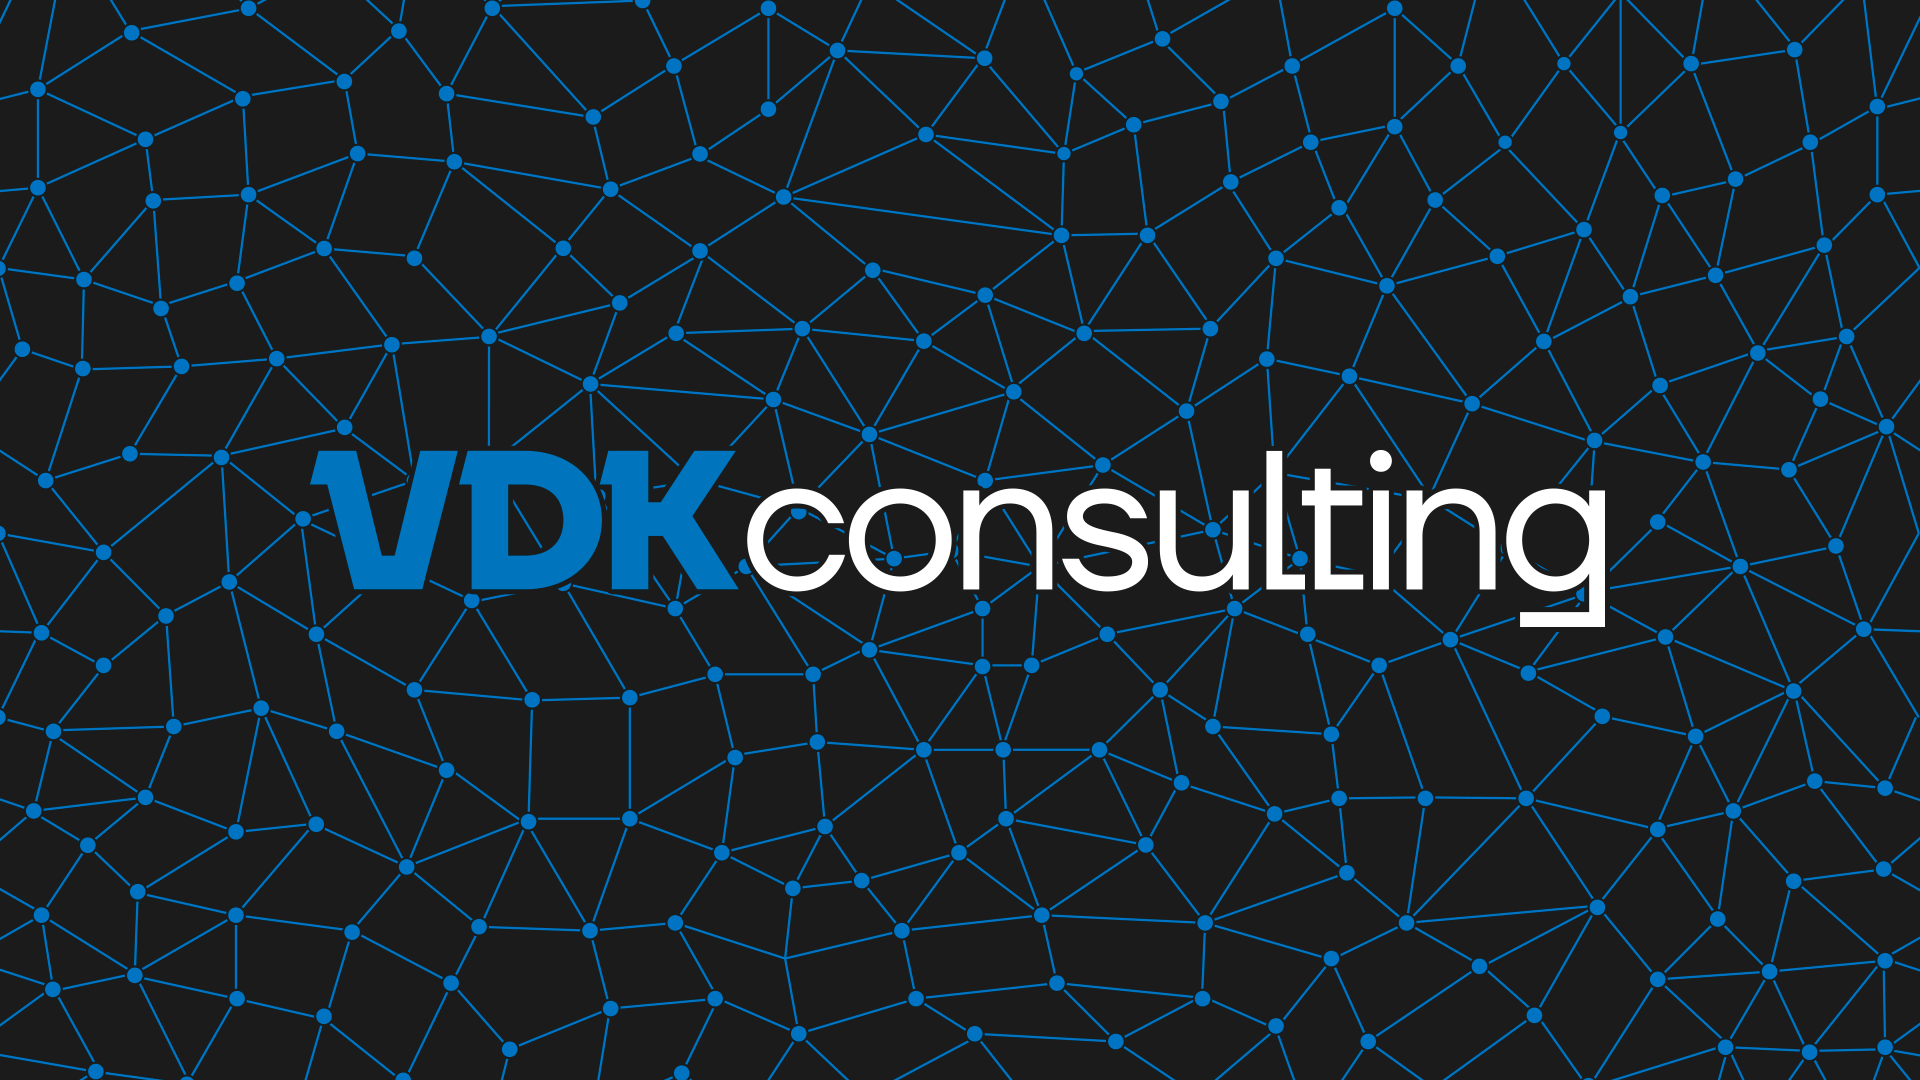 VDK Consulting